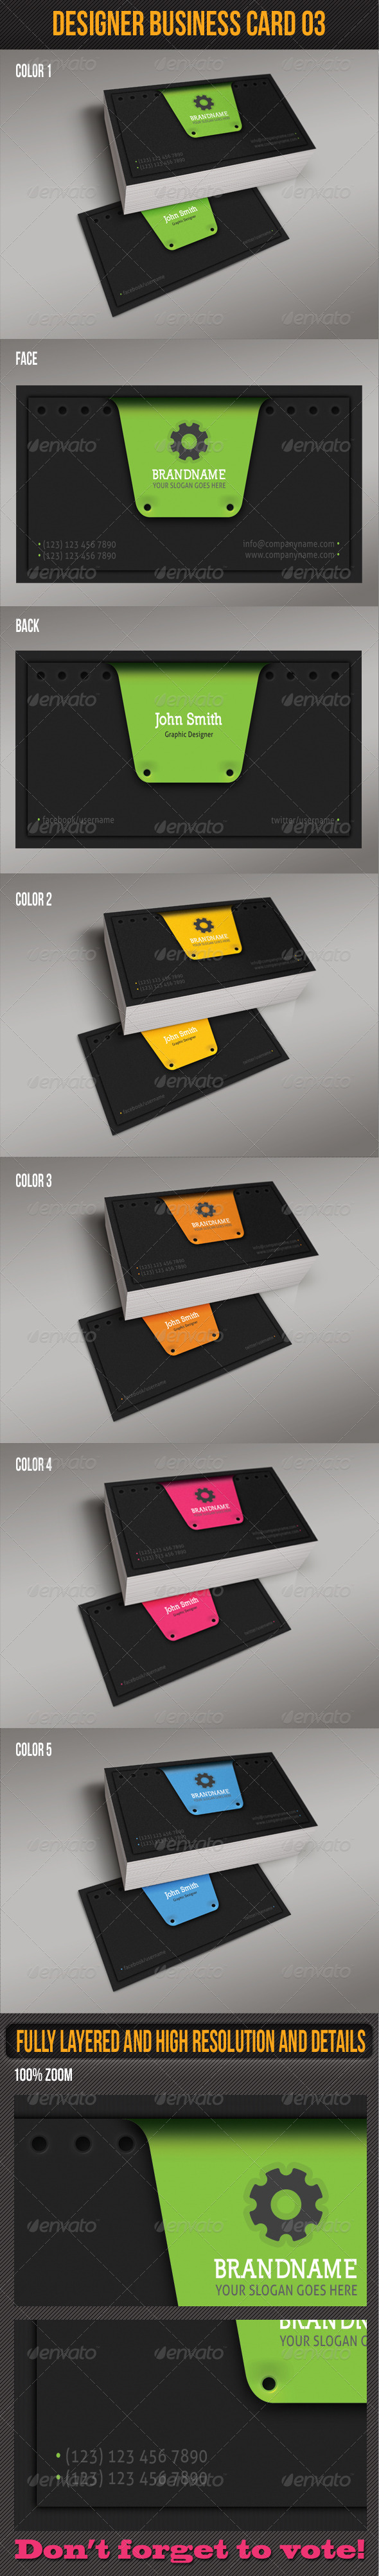 GraphicRiver Designer Business Card 03 4995218